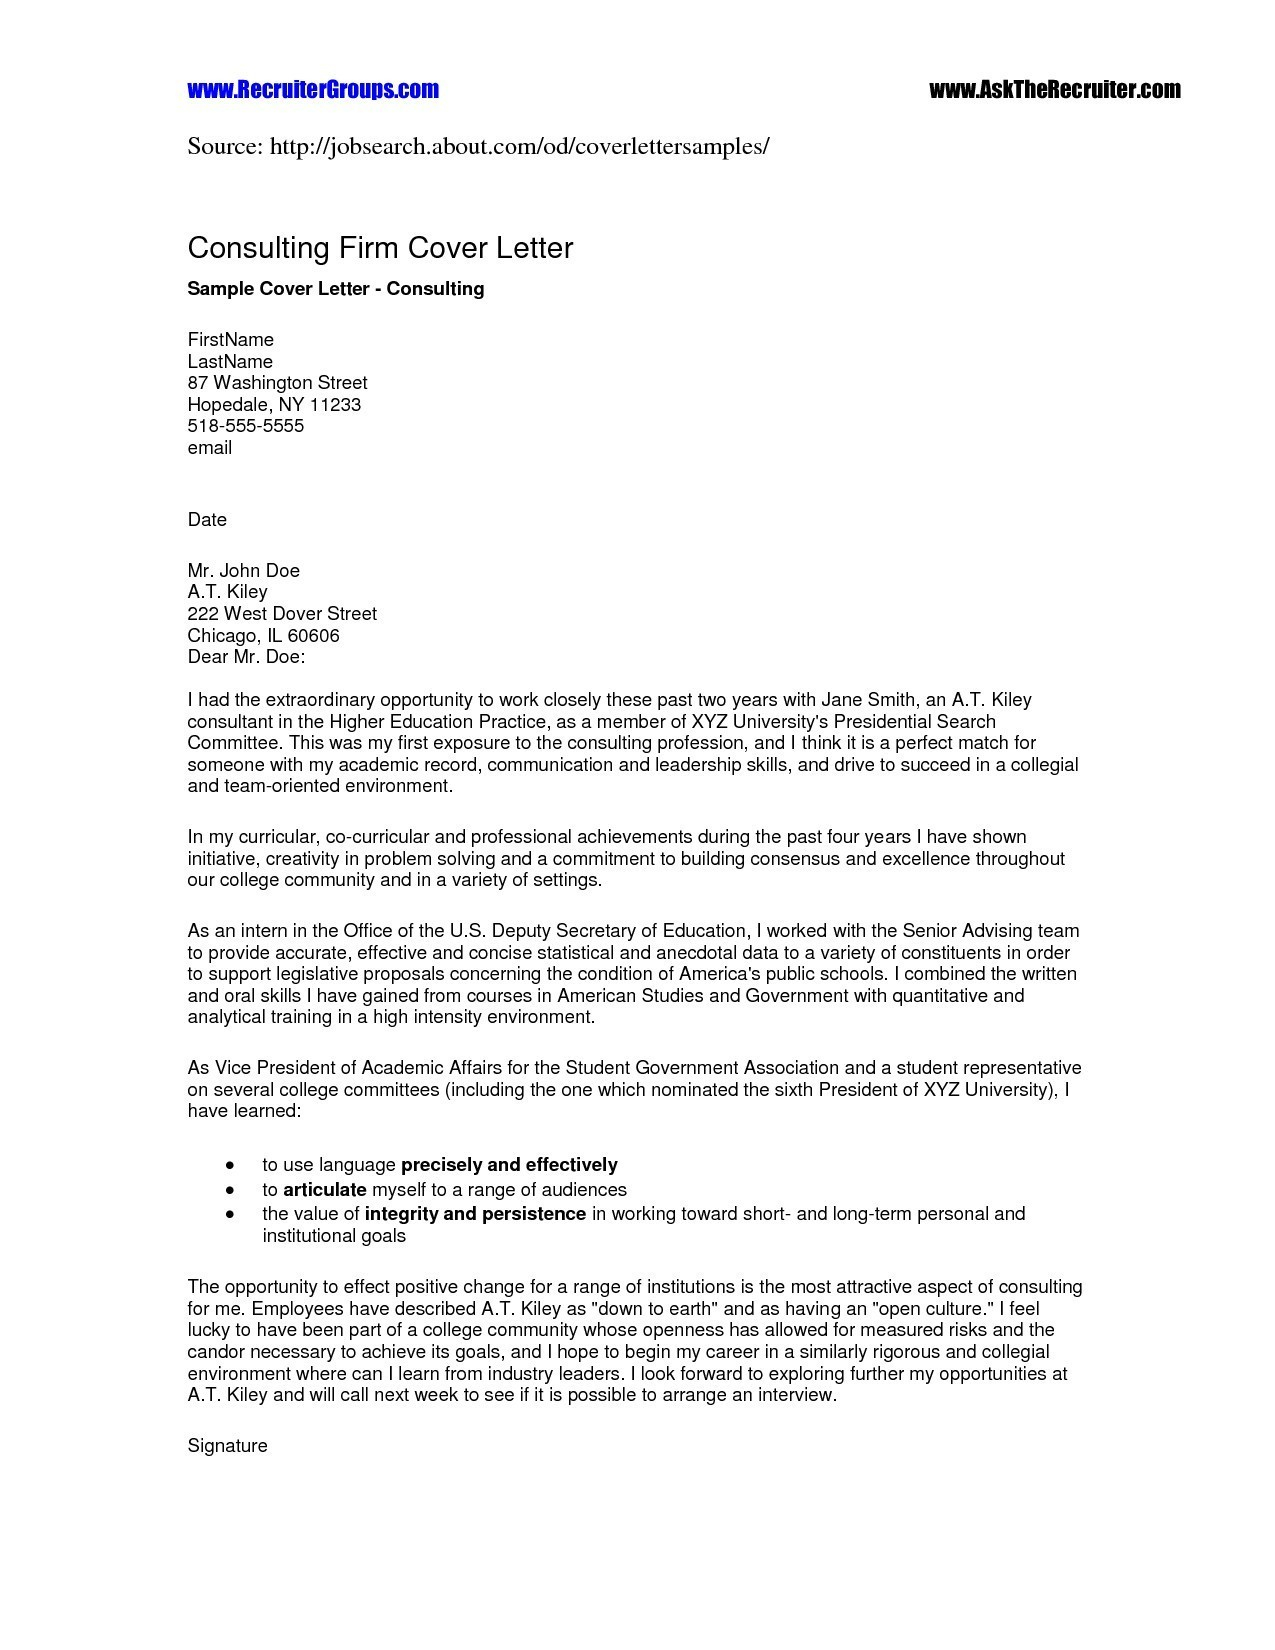 Formal Cover Letter Template - Business Cover Letter format Sample Fresh format Business Cover